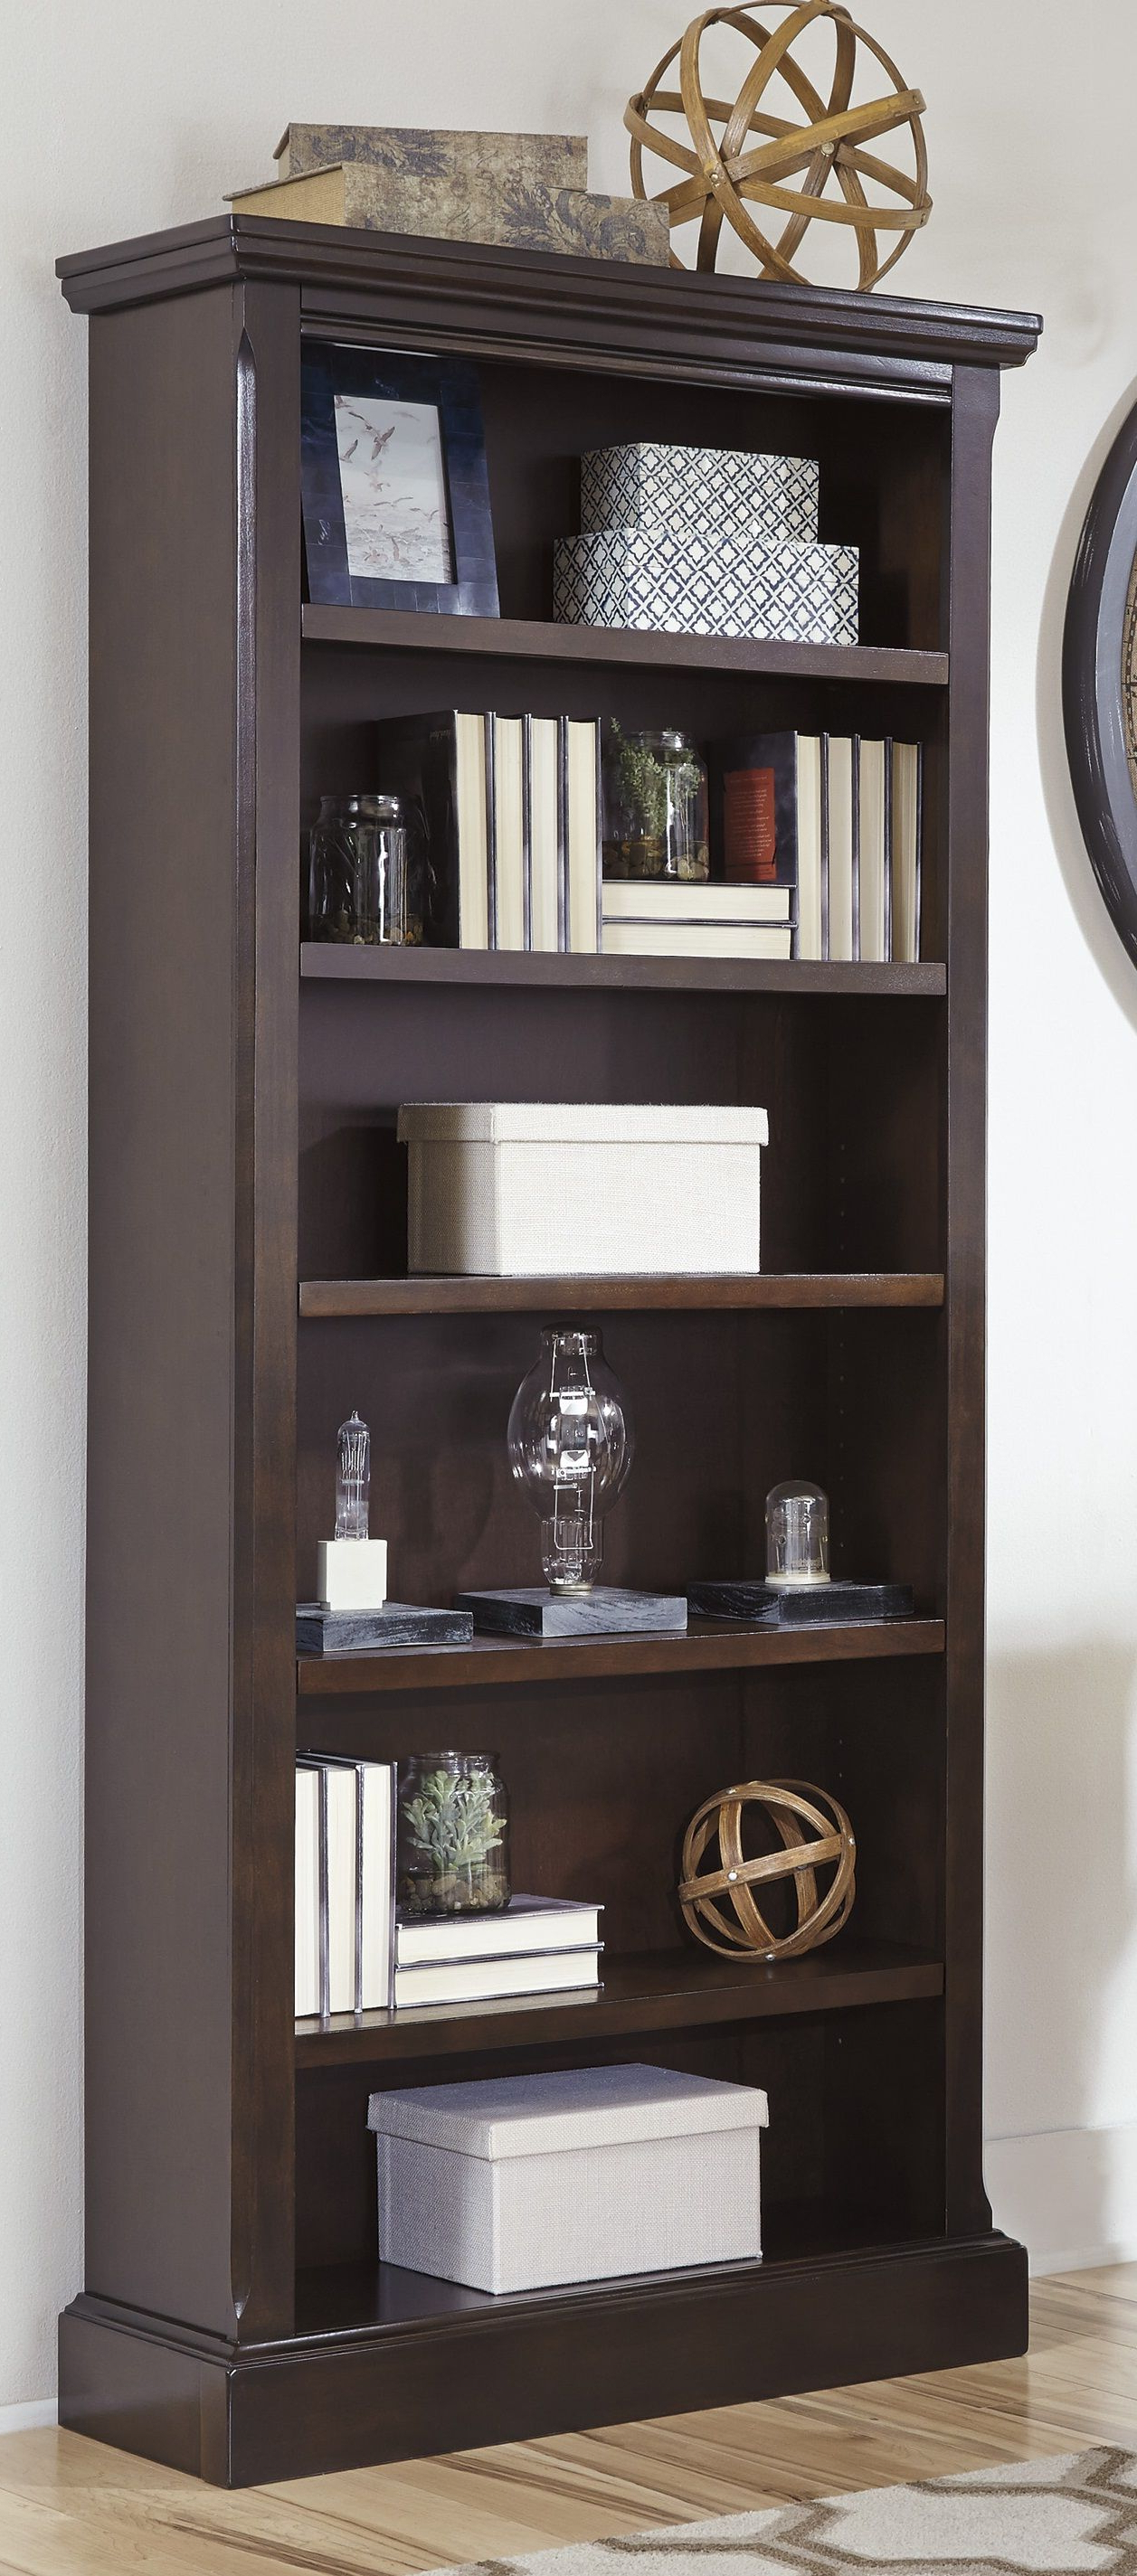 Porter – Large Bookcase – H697 17 Bookcases From Ashley At For 2020 Crowley Standard Bookcases (Gallery 10 of 20)